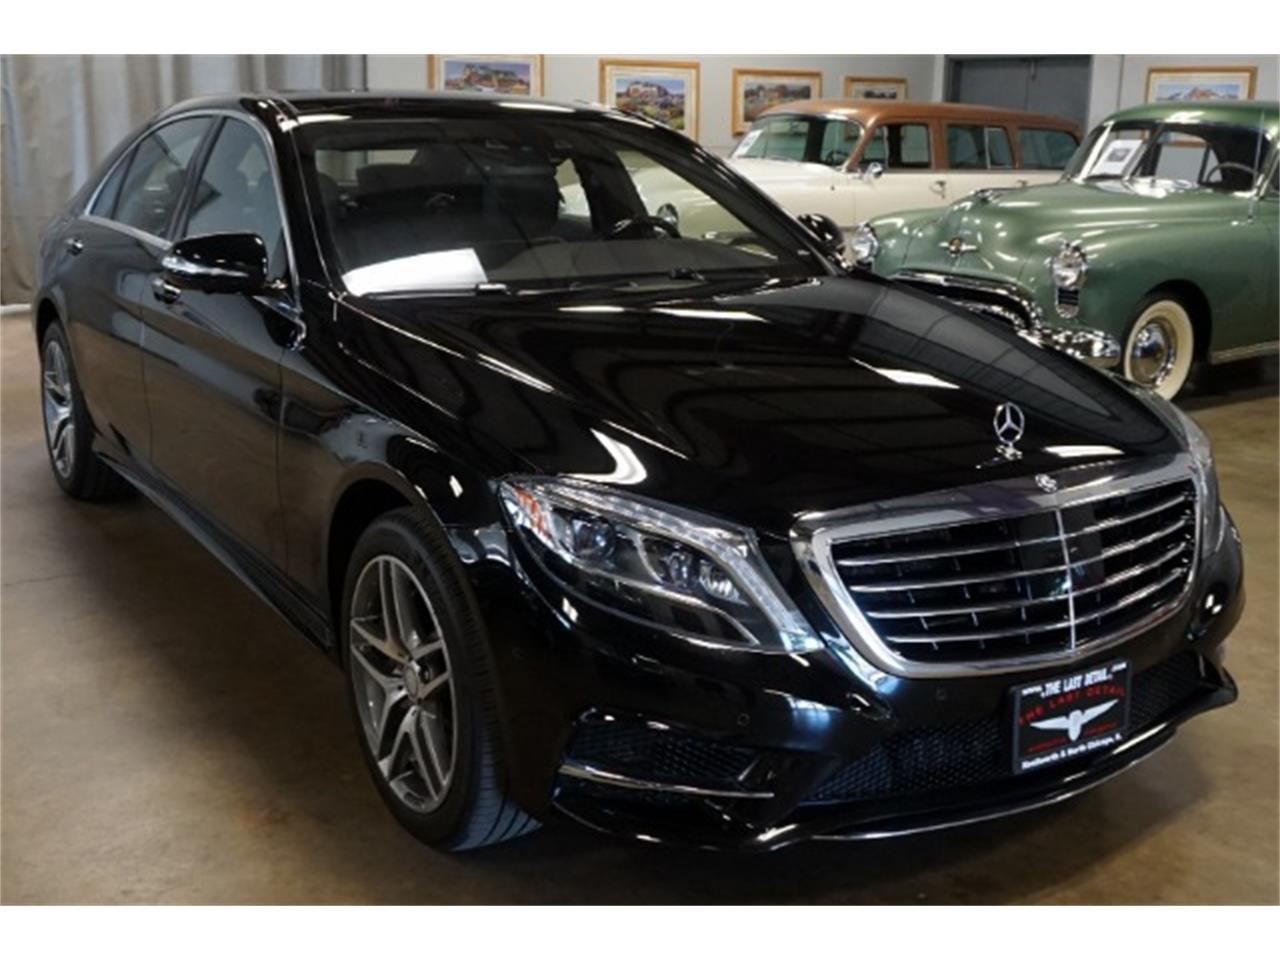 for sale 2014 mercedes-benz s-class in chicago, illinois cars - chicago, il at geebo